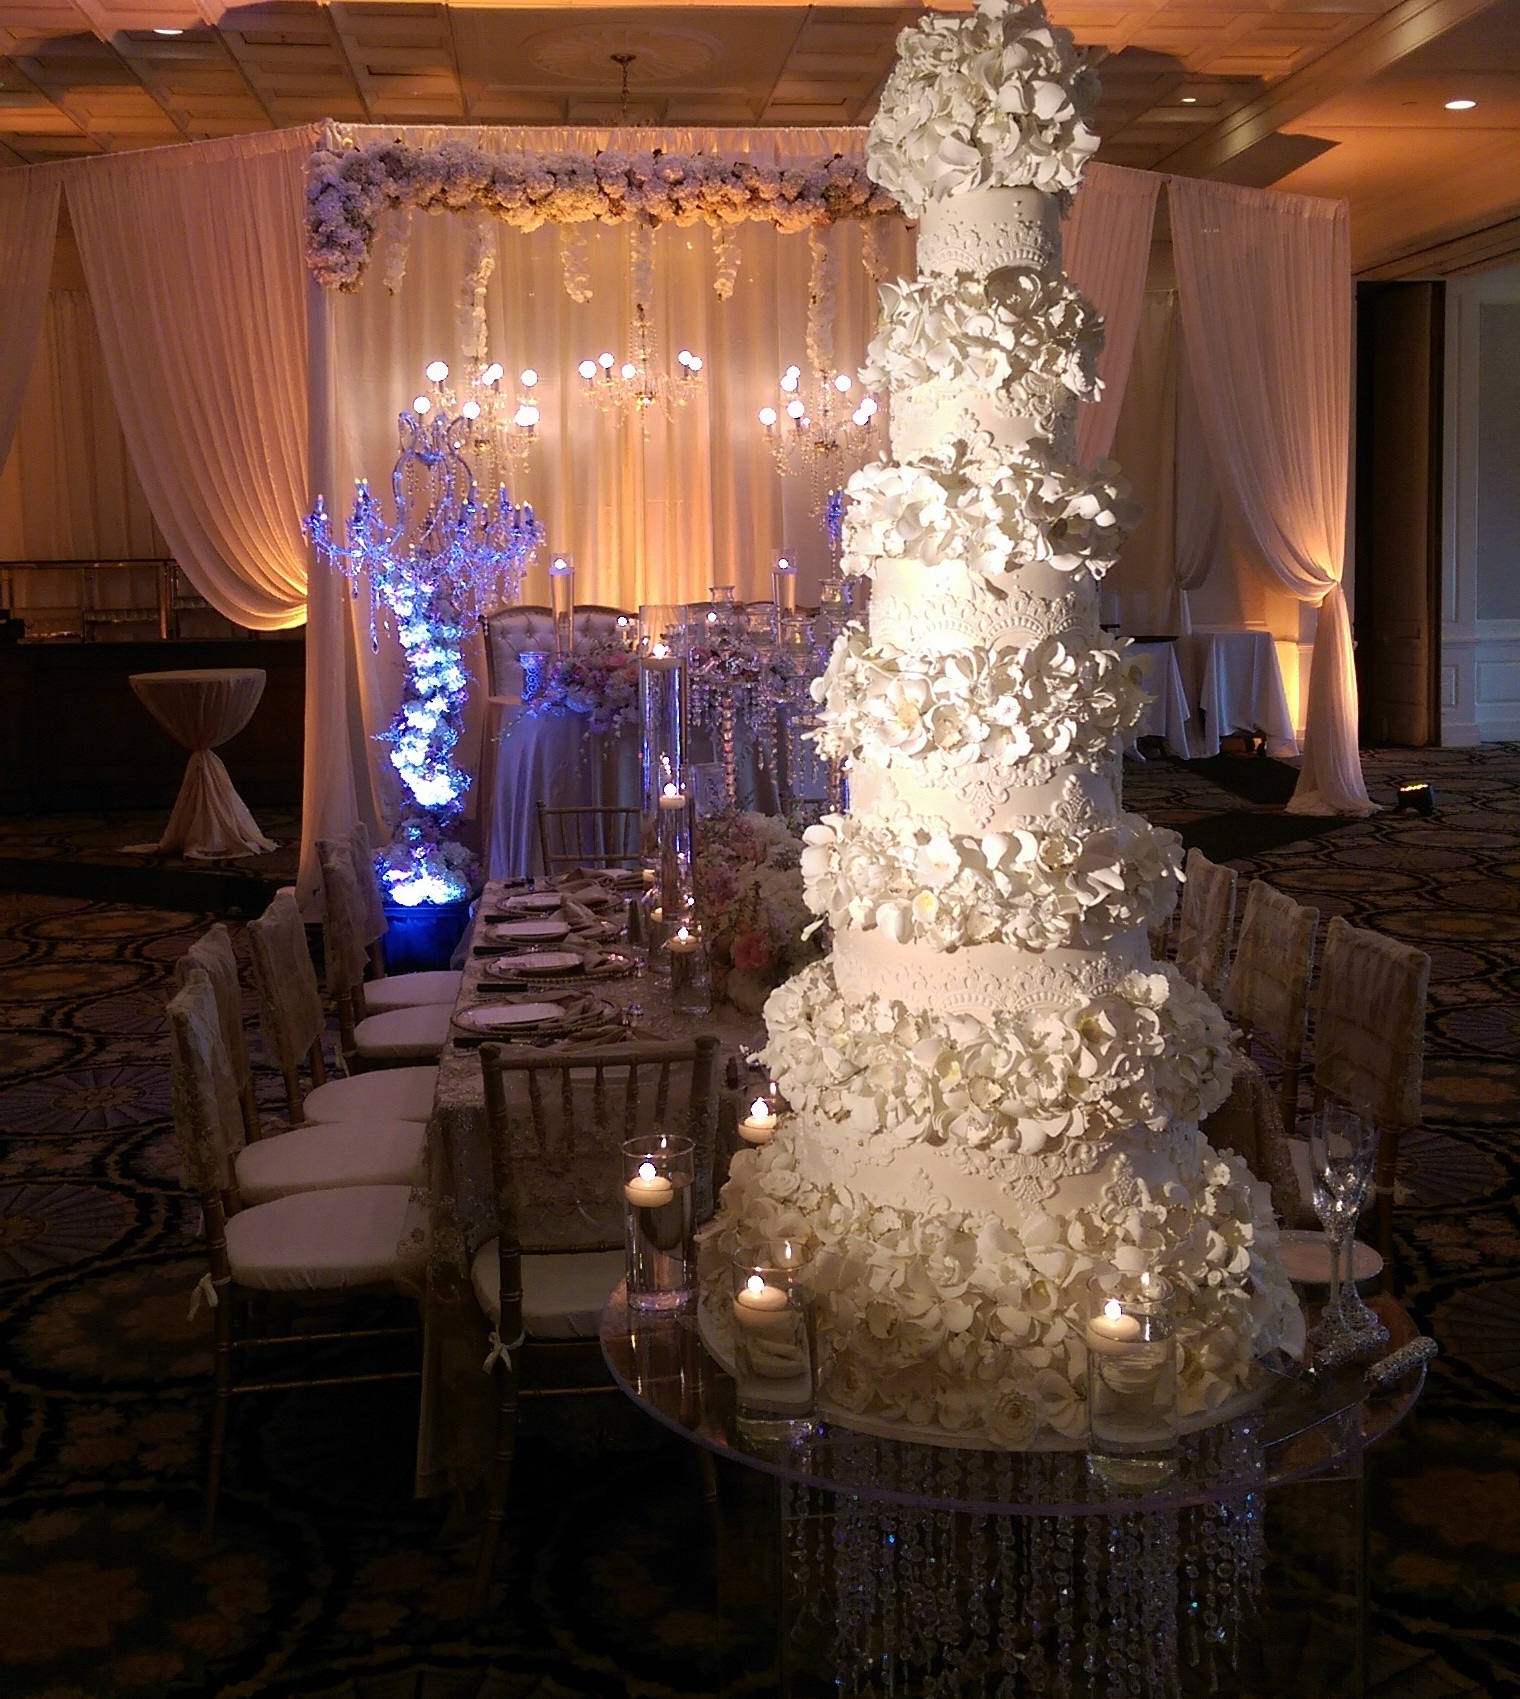 Tall white wedding cake with white sugar flowers